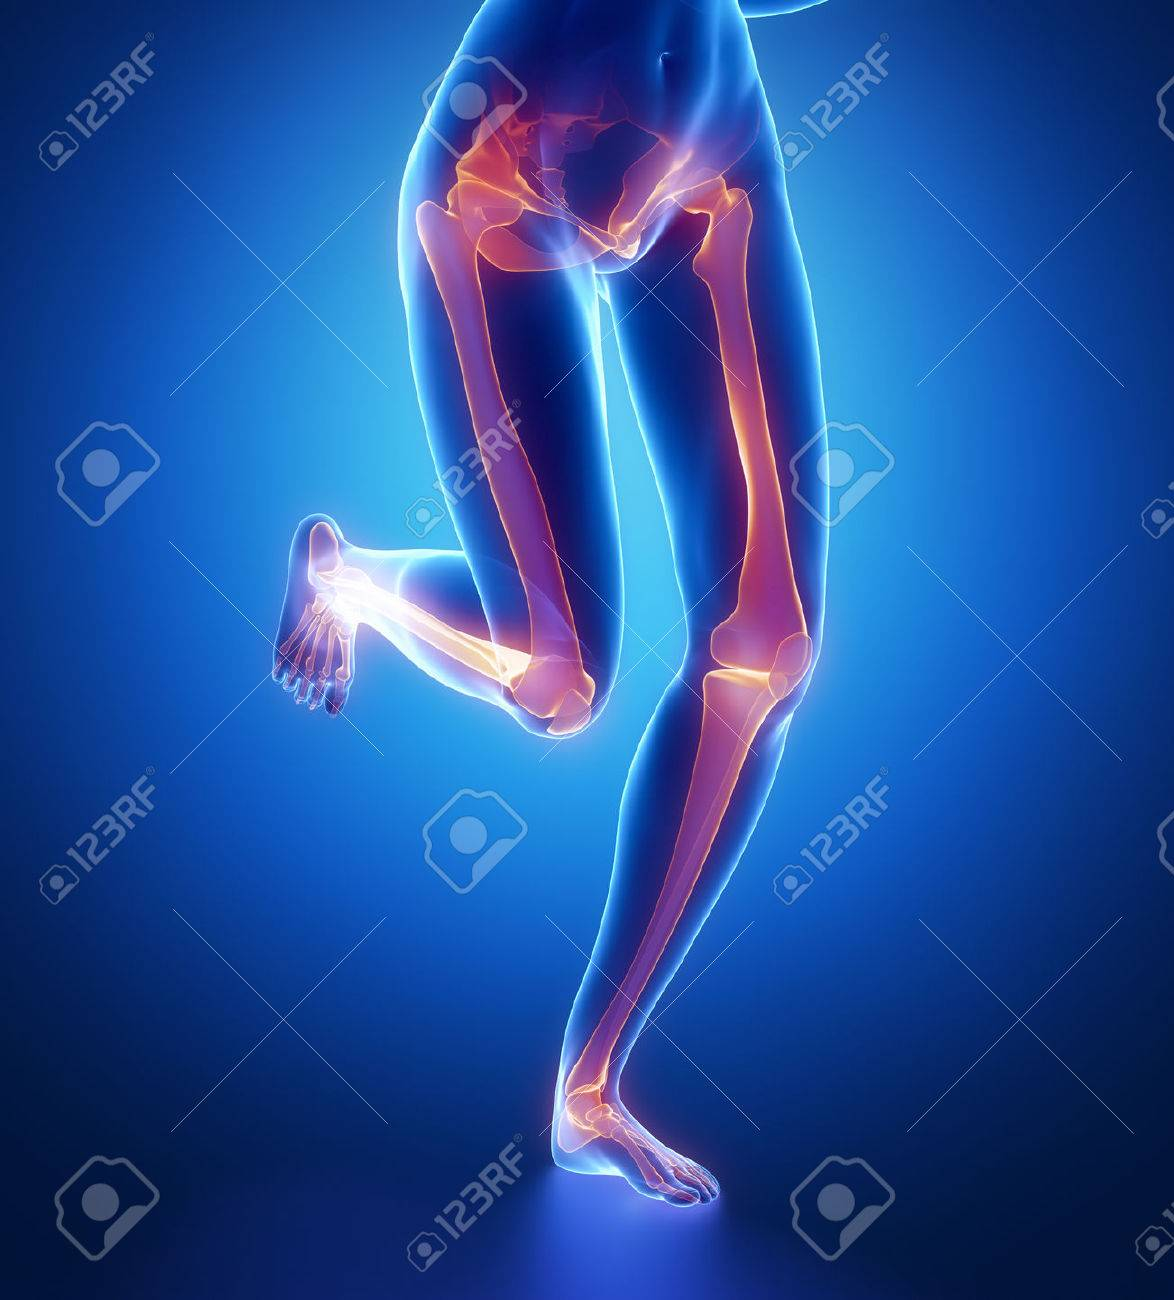 Focused On Leg Bones Anatomy Stock Photo Picture And Royalty Free